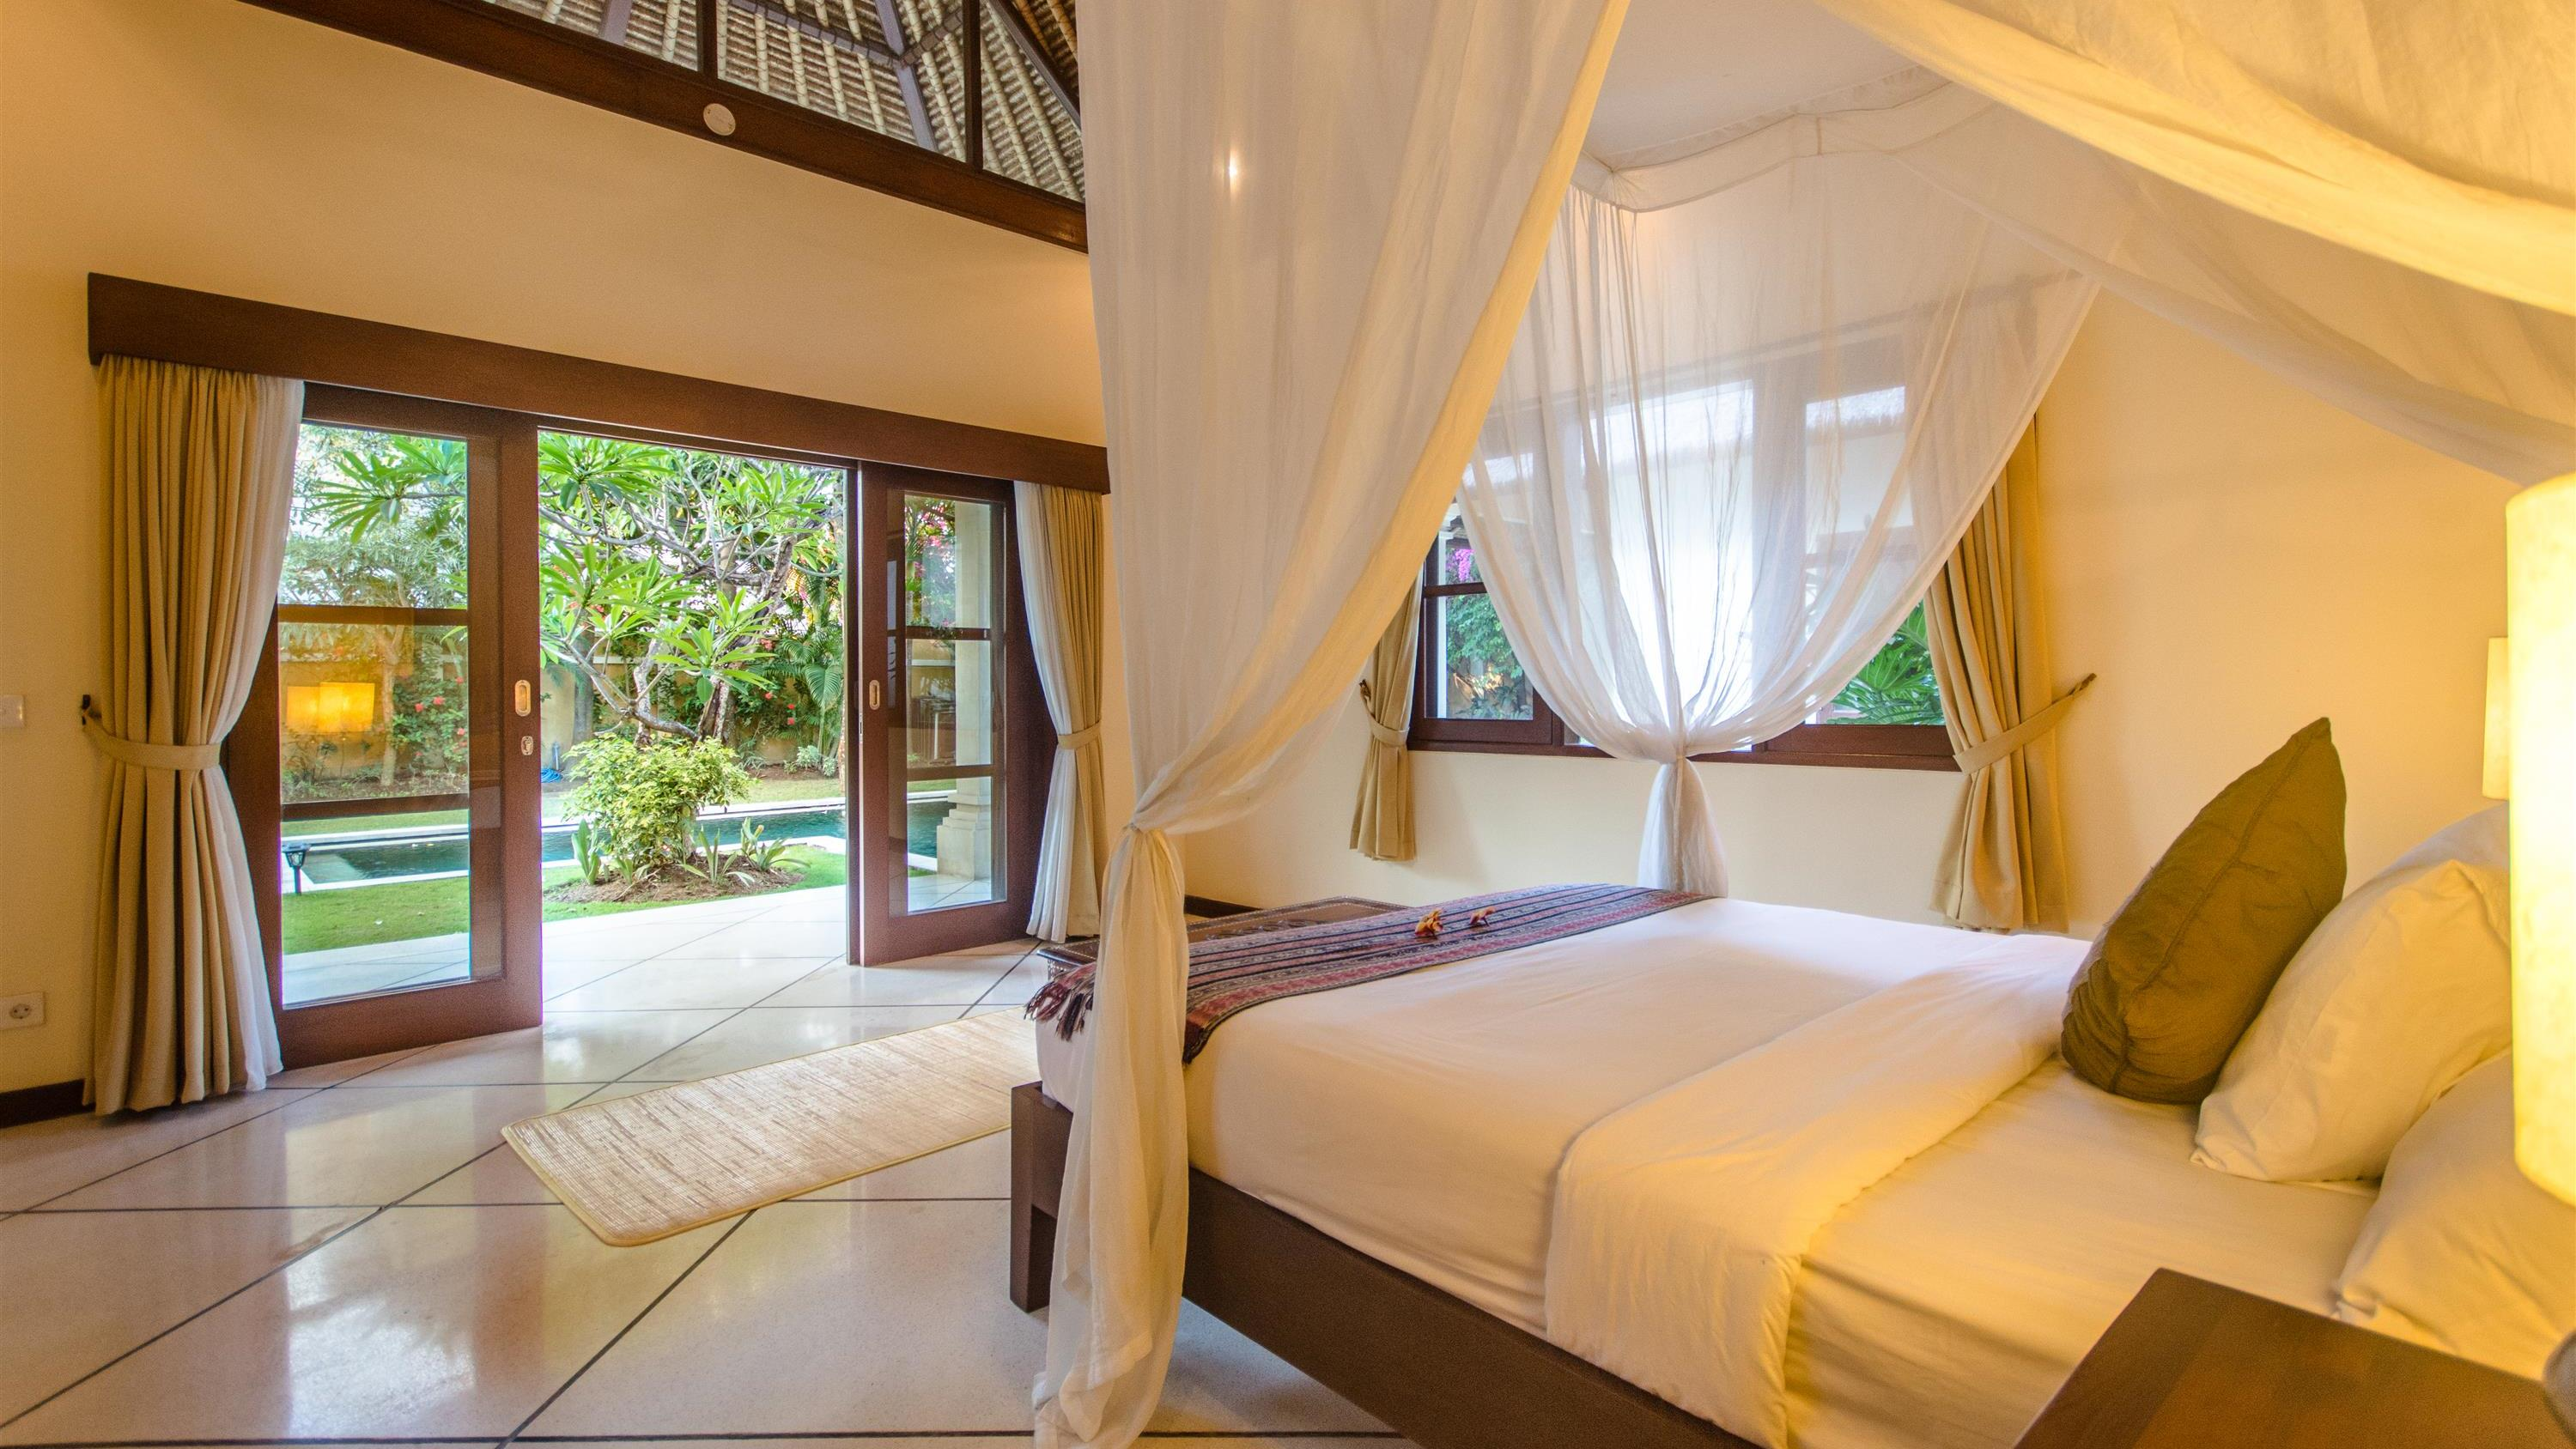 Bedroom with Pool View - Villa Cemara - Seminyak, Bali